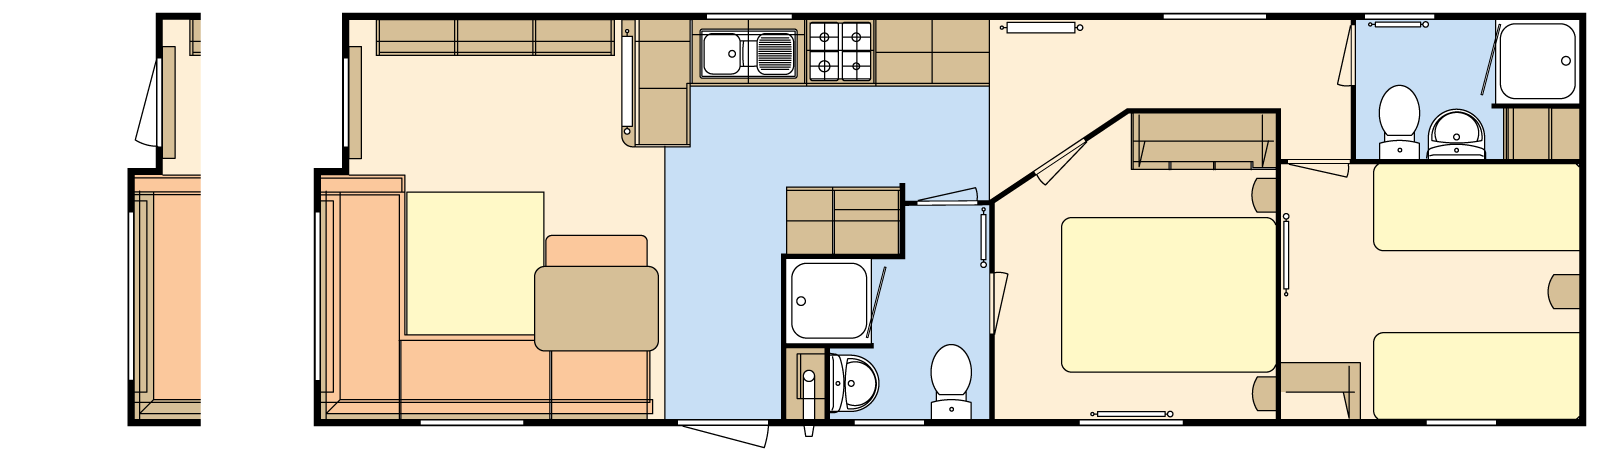 36 × 12 ES – 2 bedroom/6 berth